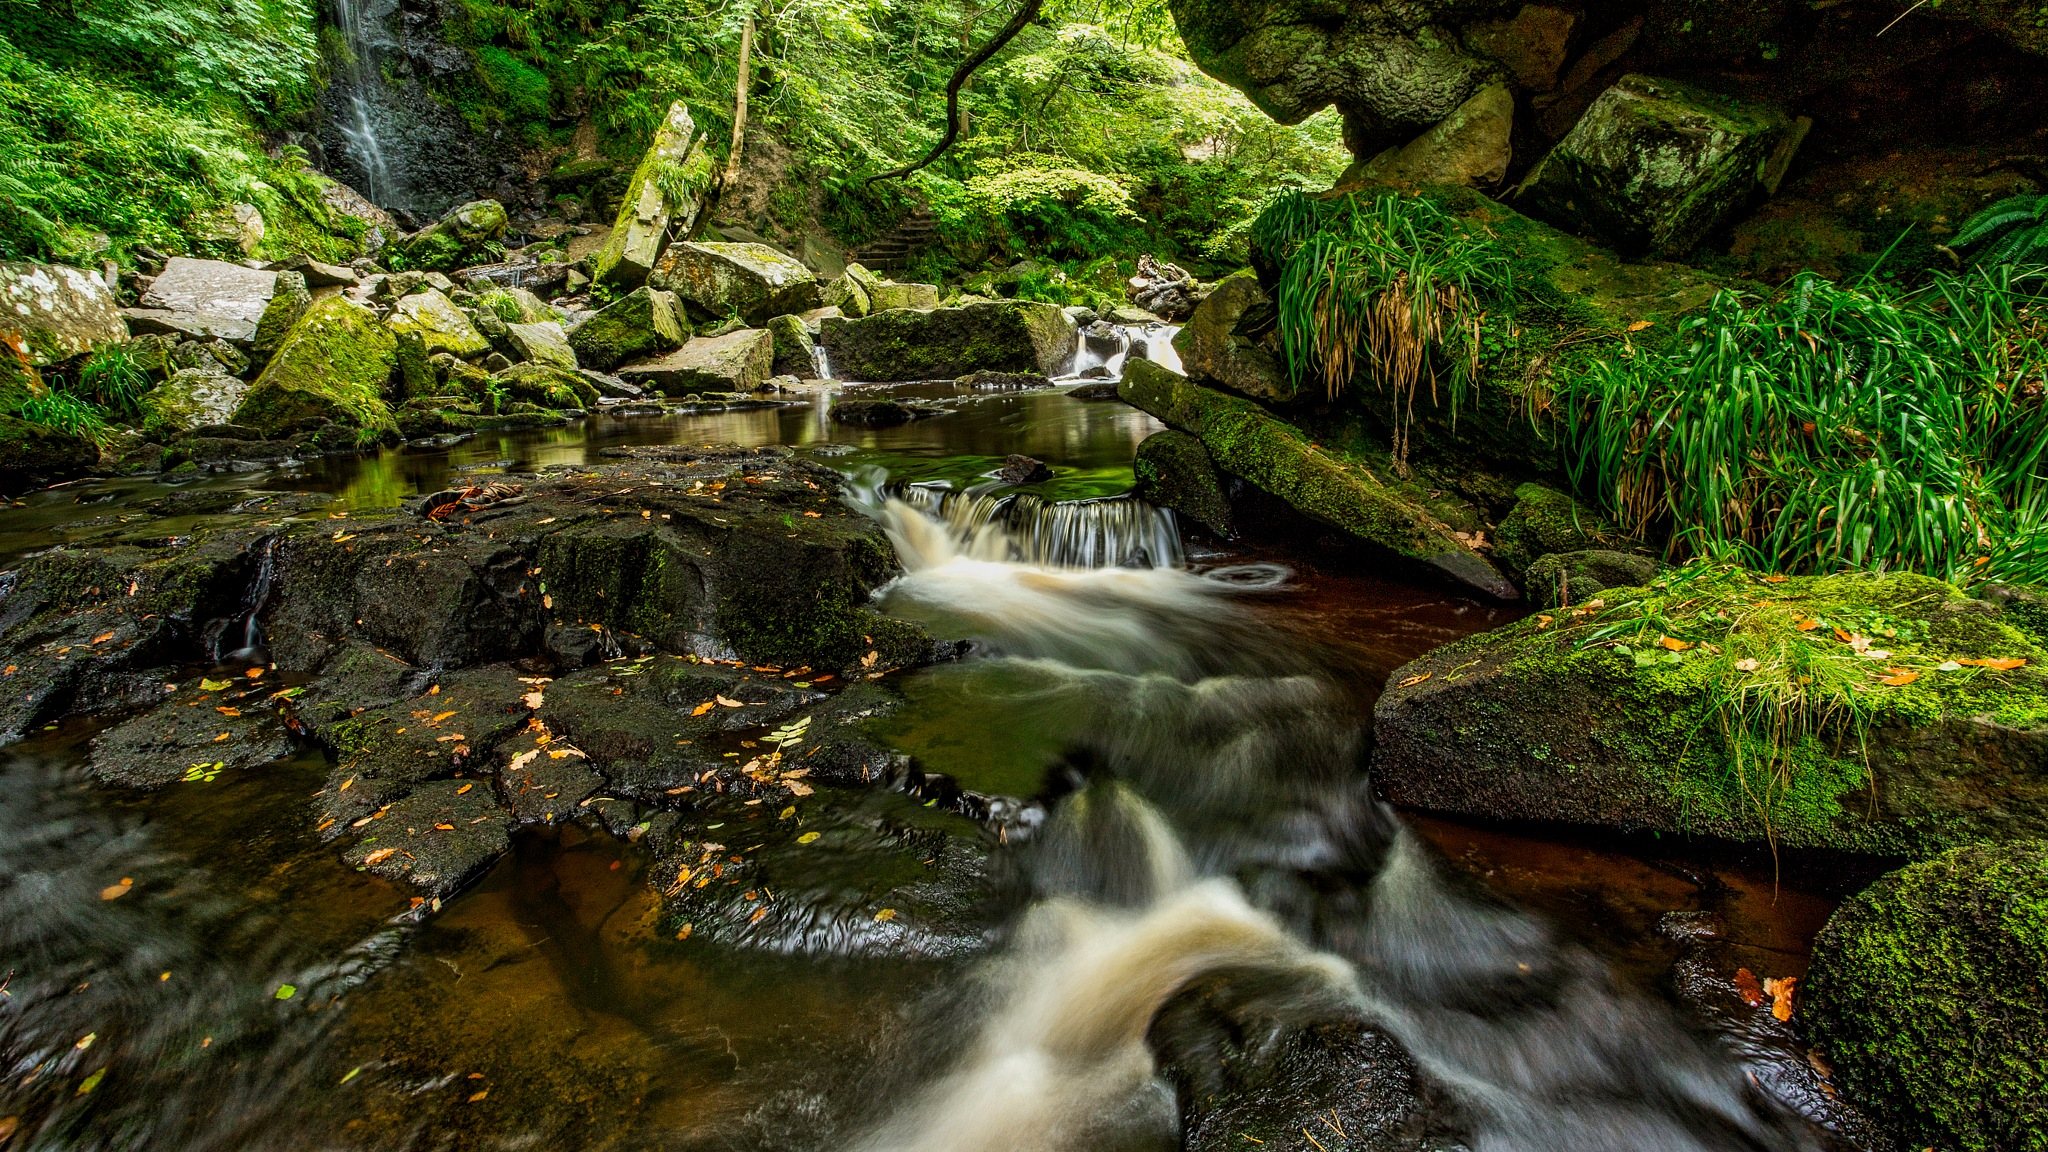 West Beck by Tony Shaw